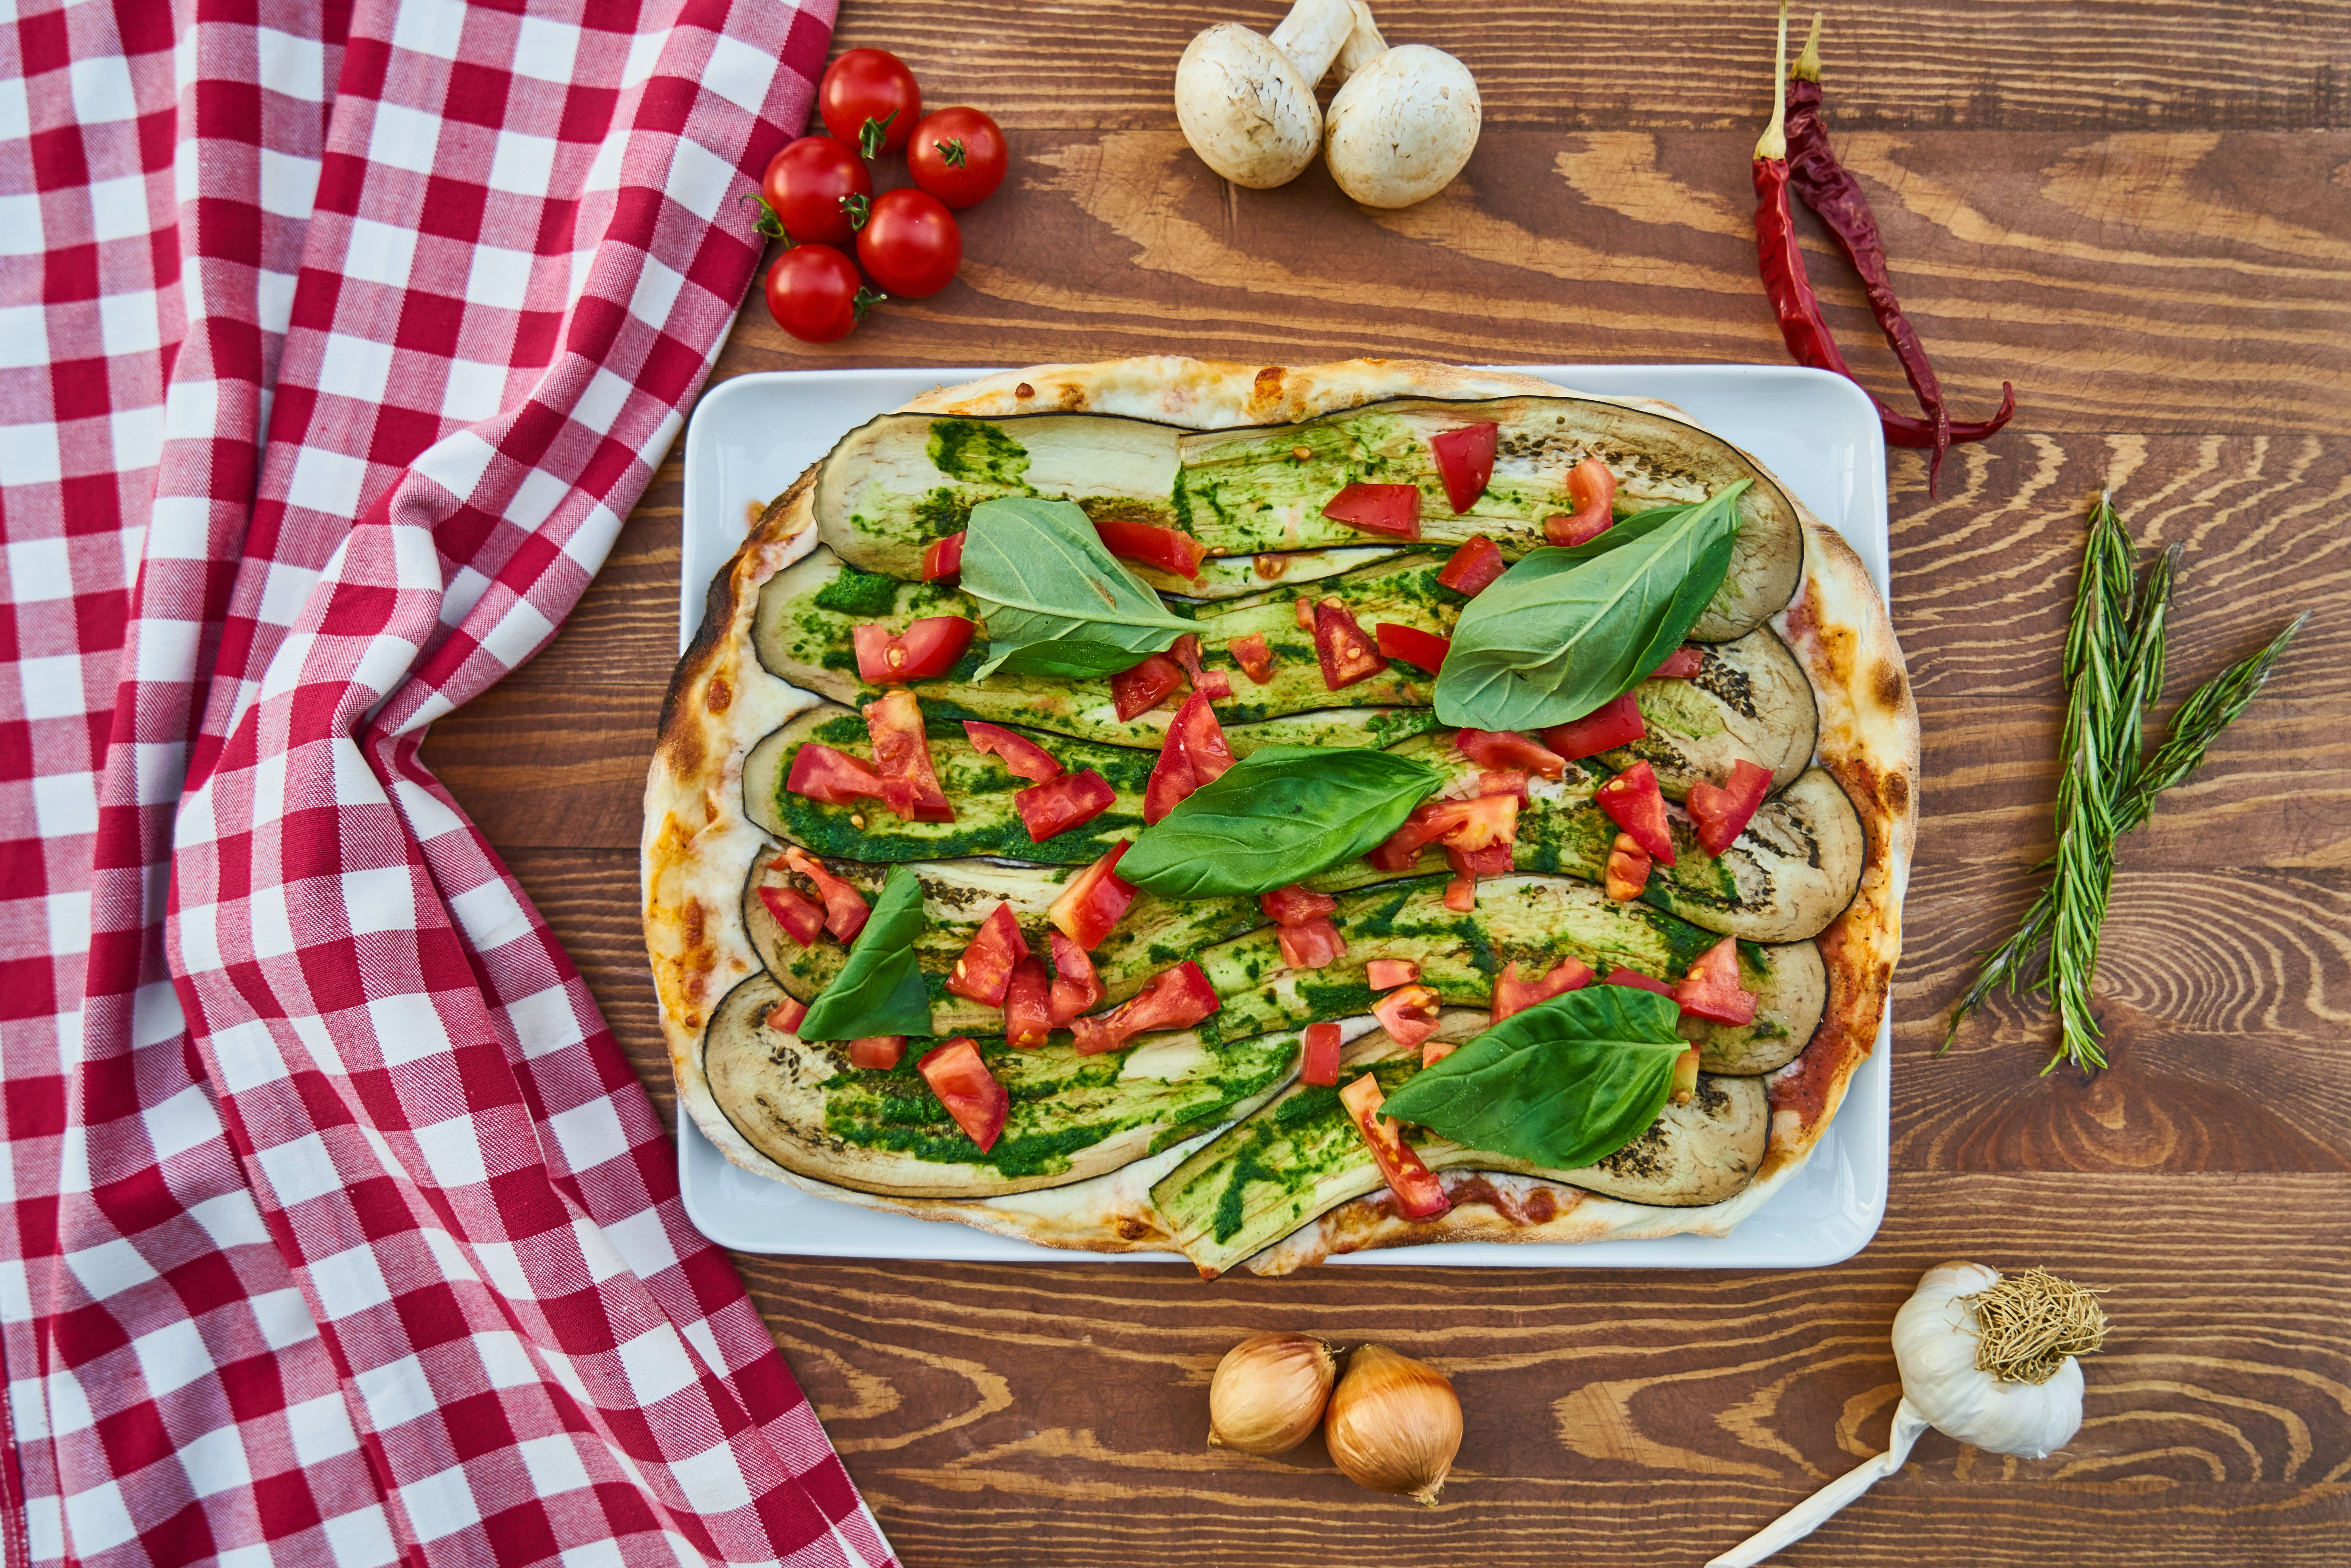 Pizza With Vegetables and Spices